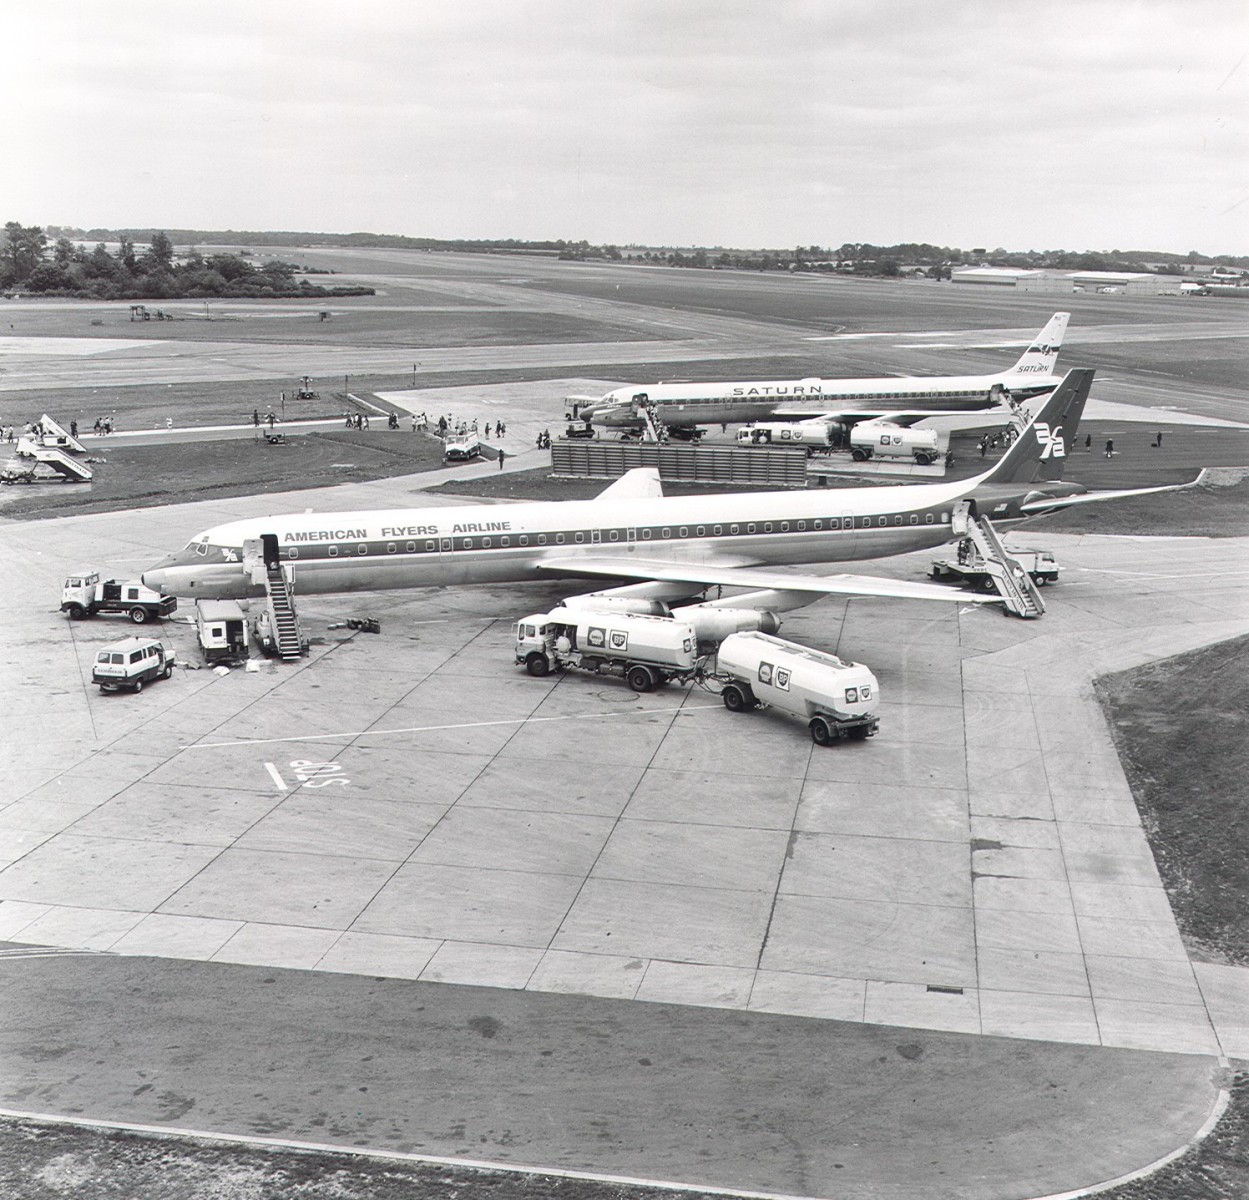 The first jets arrived in the early 60s